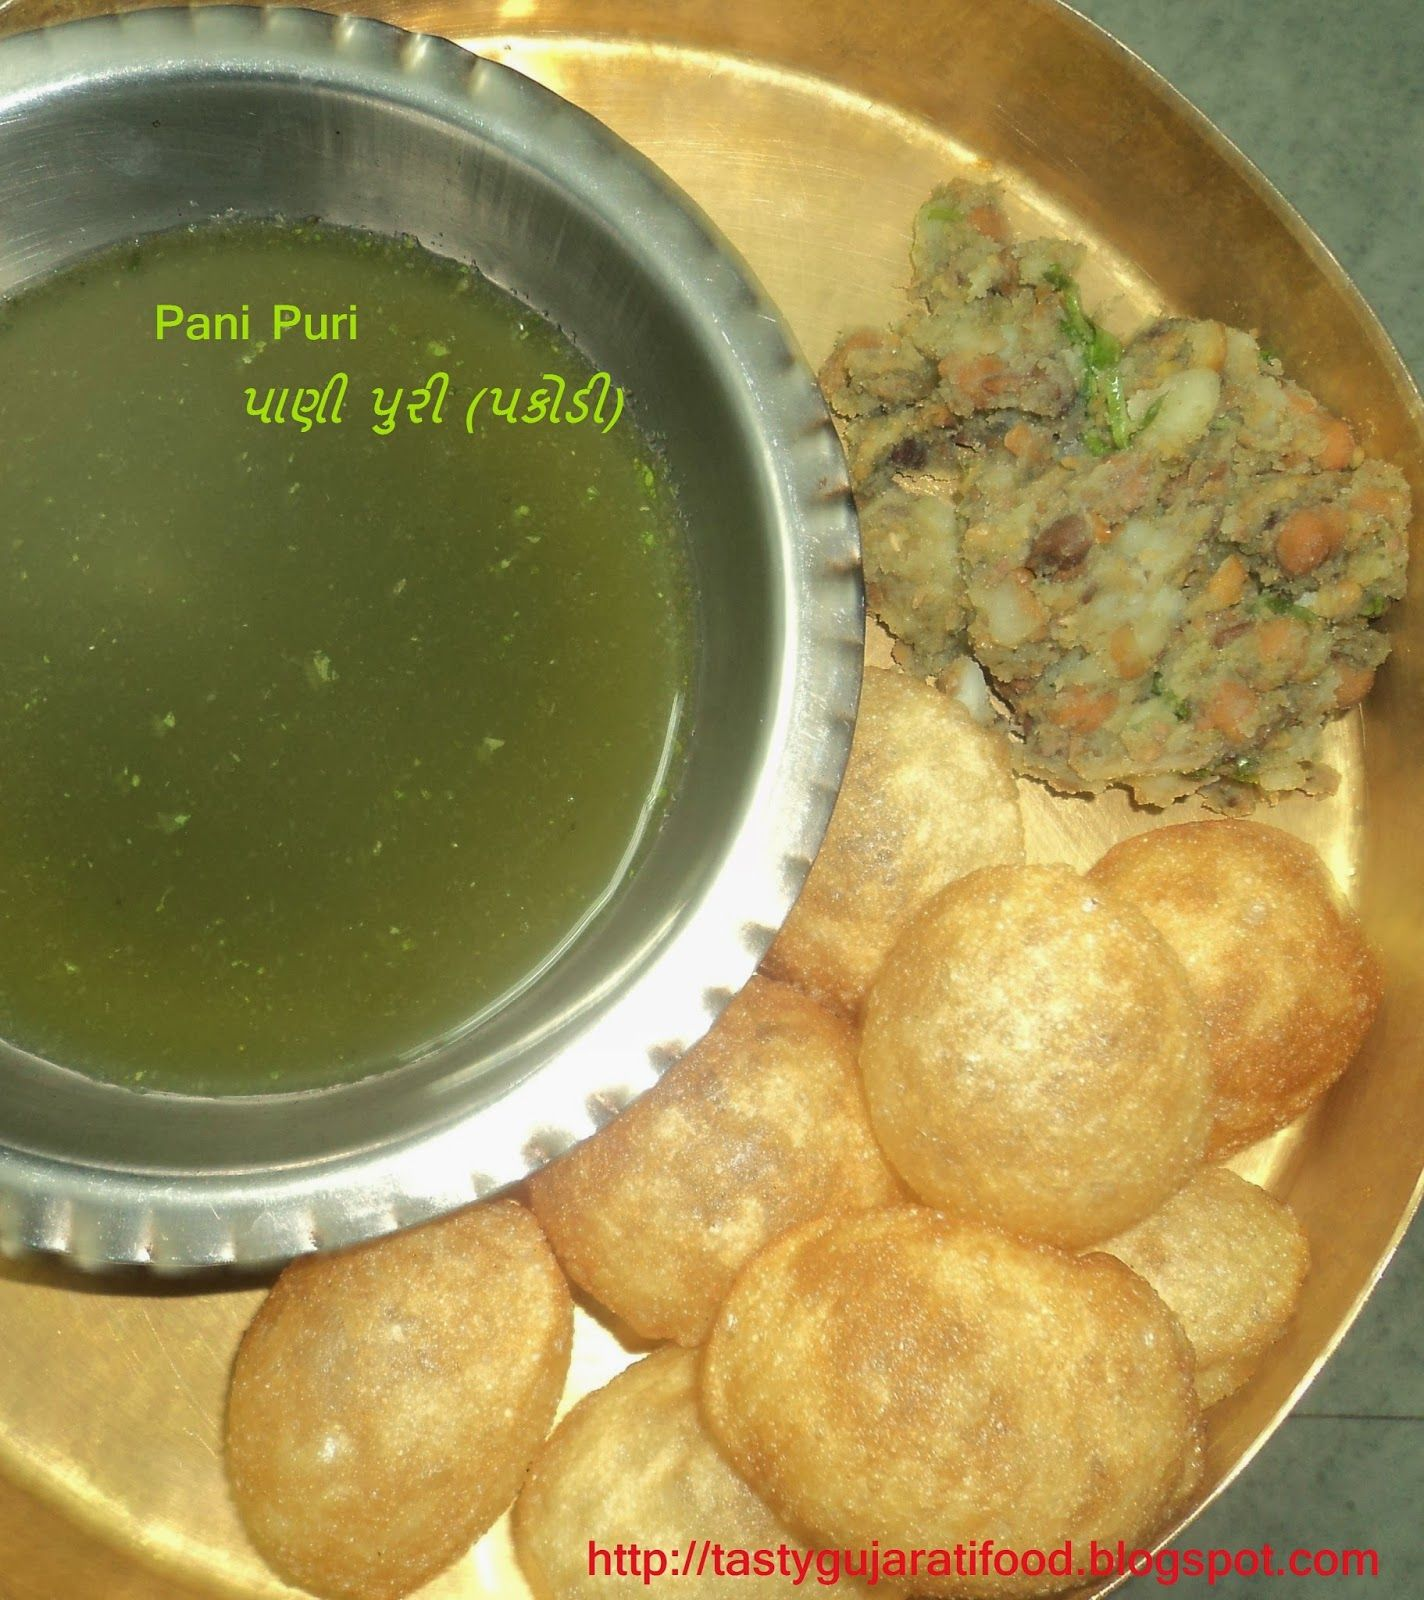 Pani puri pakodi recipe in gujarati language by tasty gujarati pani puri pakodi recipe in gujarati language by tasty gujarati food recipes blog every ones favorite light snack made with chick pea potato mint forumfinder Gallery